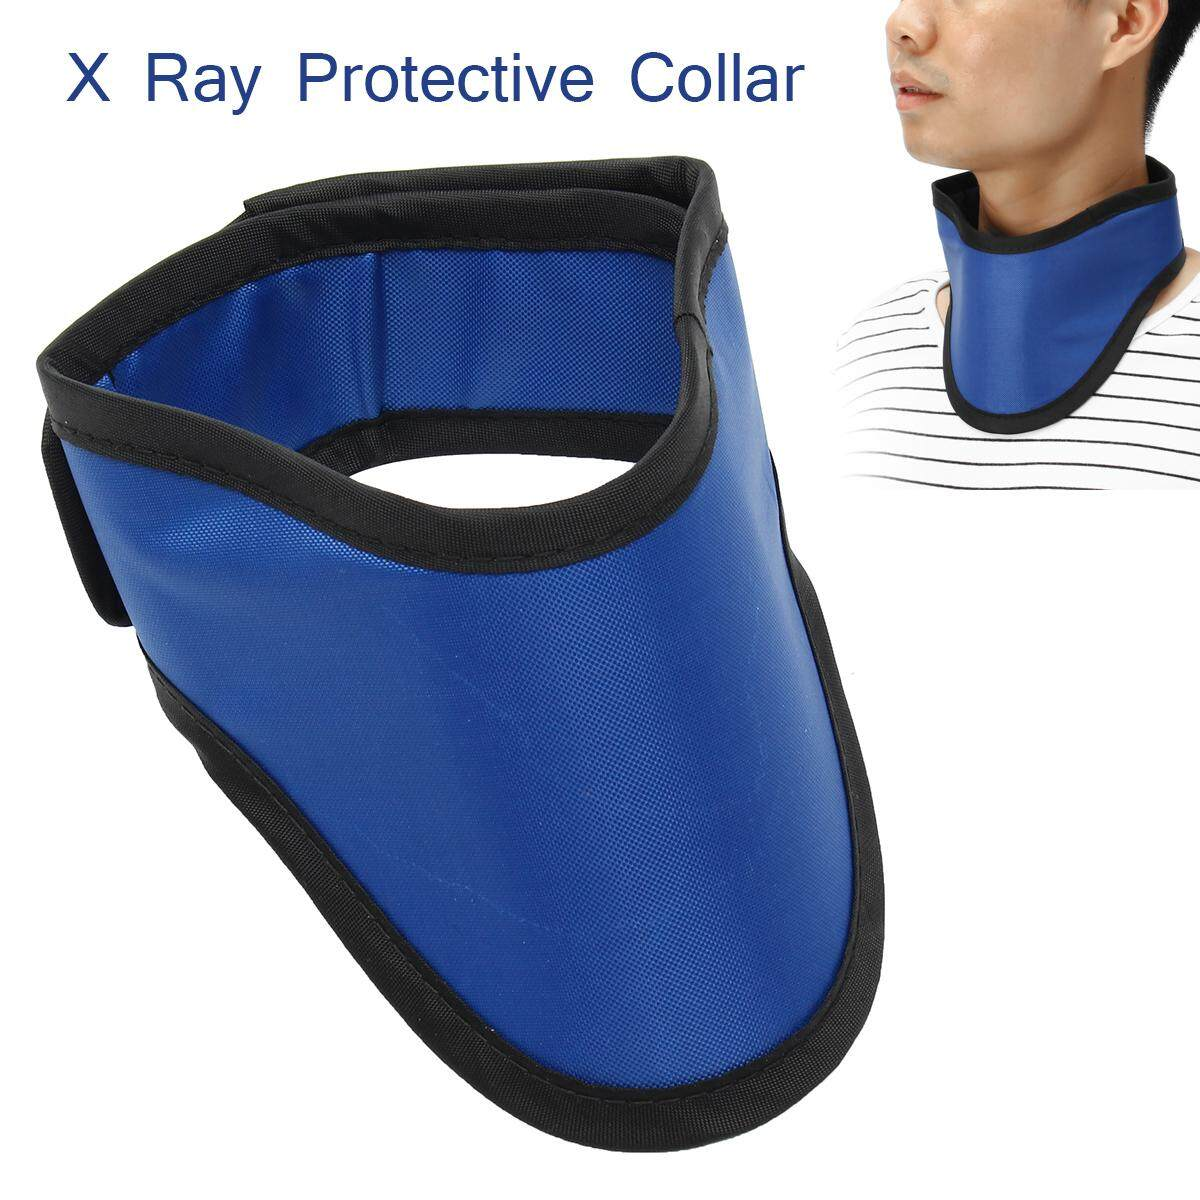 X Ray Protective Collar Lead Thyroid Collar Ct Radiation Shield Lead Neck Cover By Moonbeam